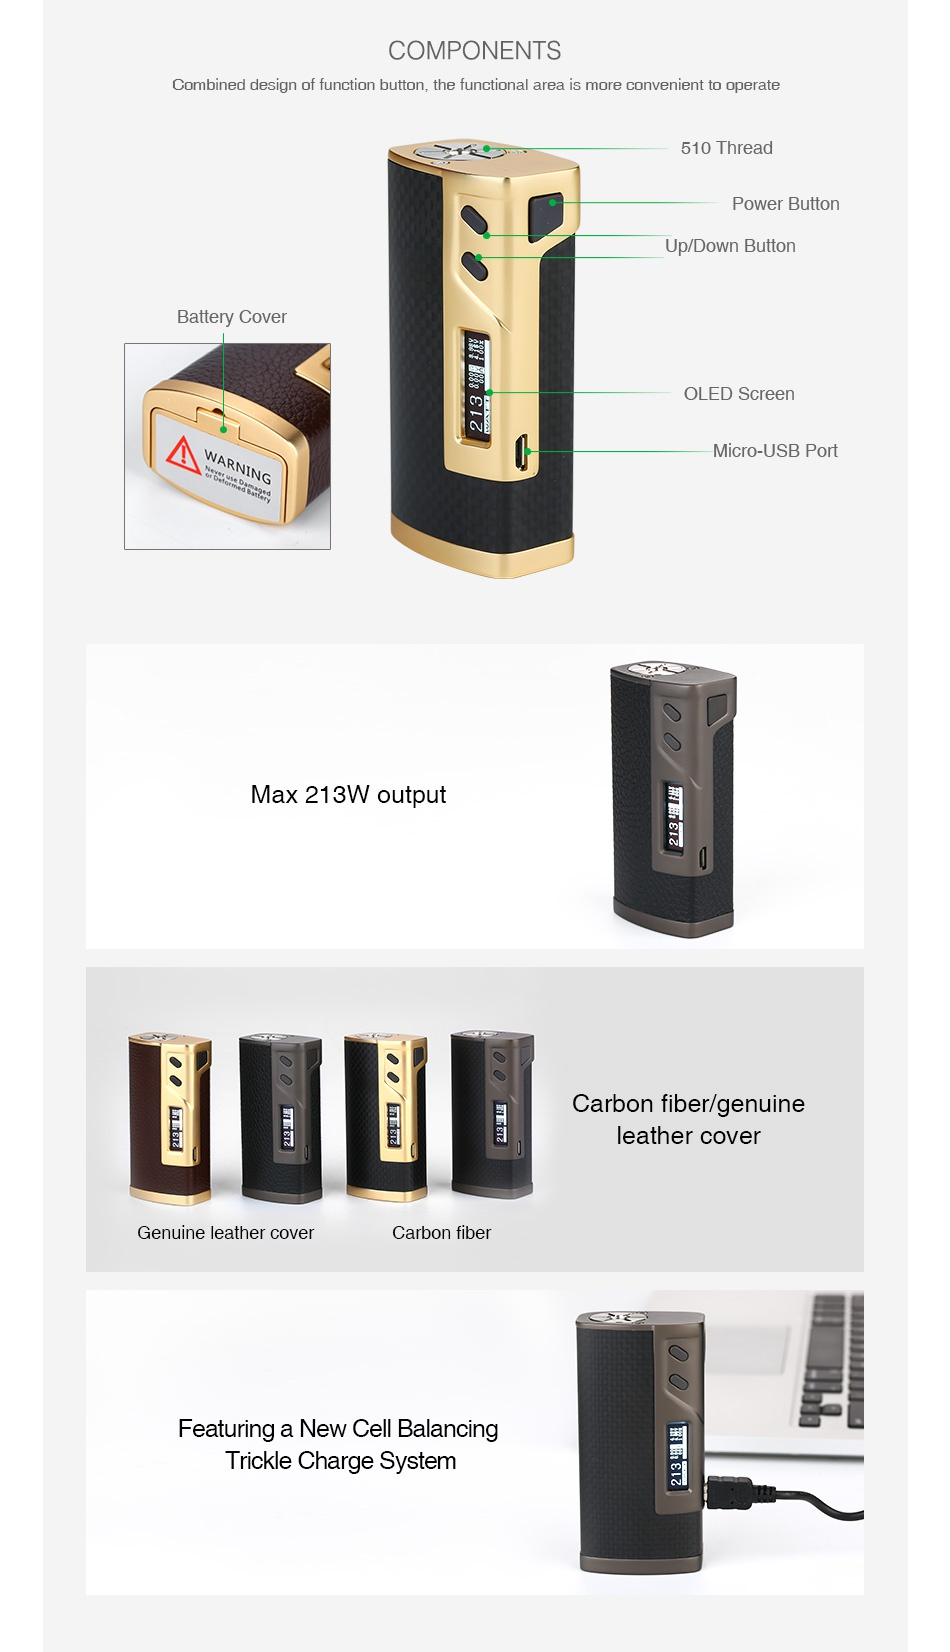 Sigelei 213 TC Box MOD COMPONENTS Combined design of function button  the functional area is more convenient to operate 510 Thread Power button Up Down Button Battery Cover OLED Scree WARNING Micro USB Port Max 213W output Carbon fiber genuin leather cover Genuine leather cover Carbon fiber Featuring a New Cell Balancing Trickle Charge System